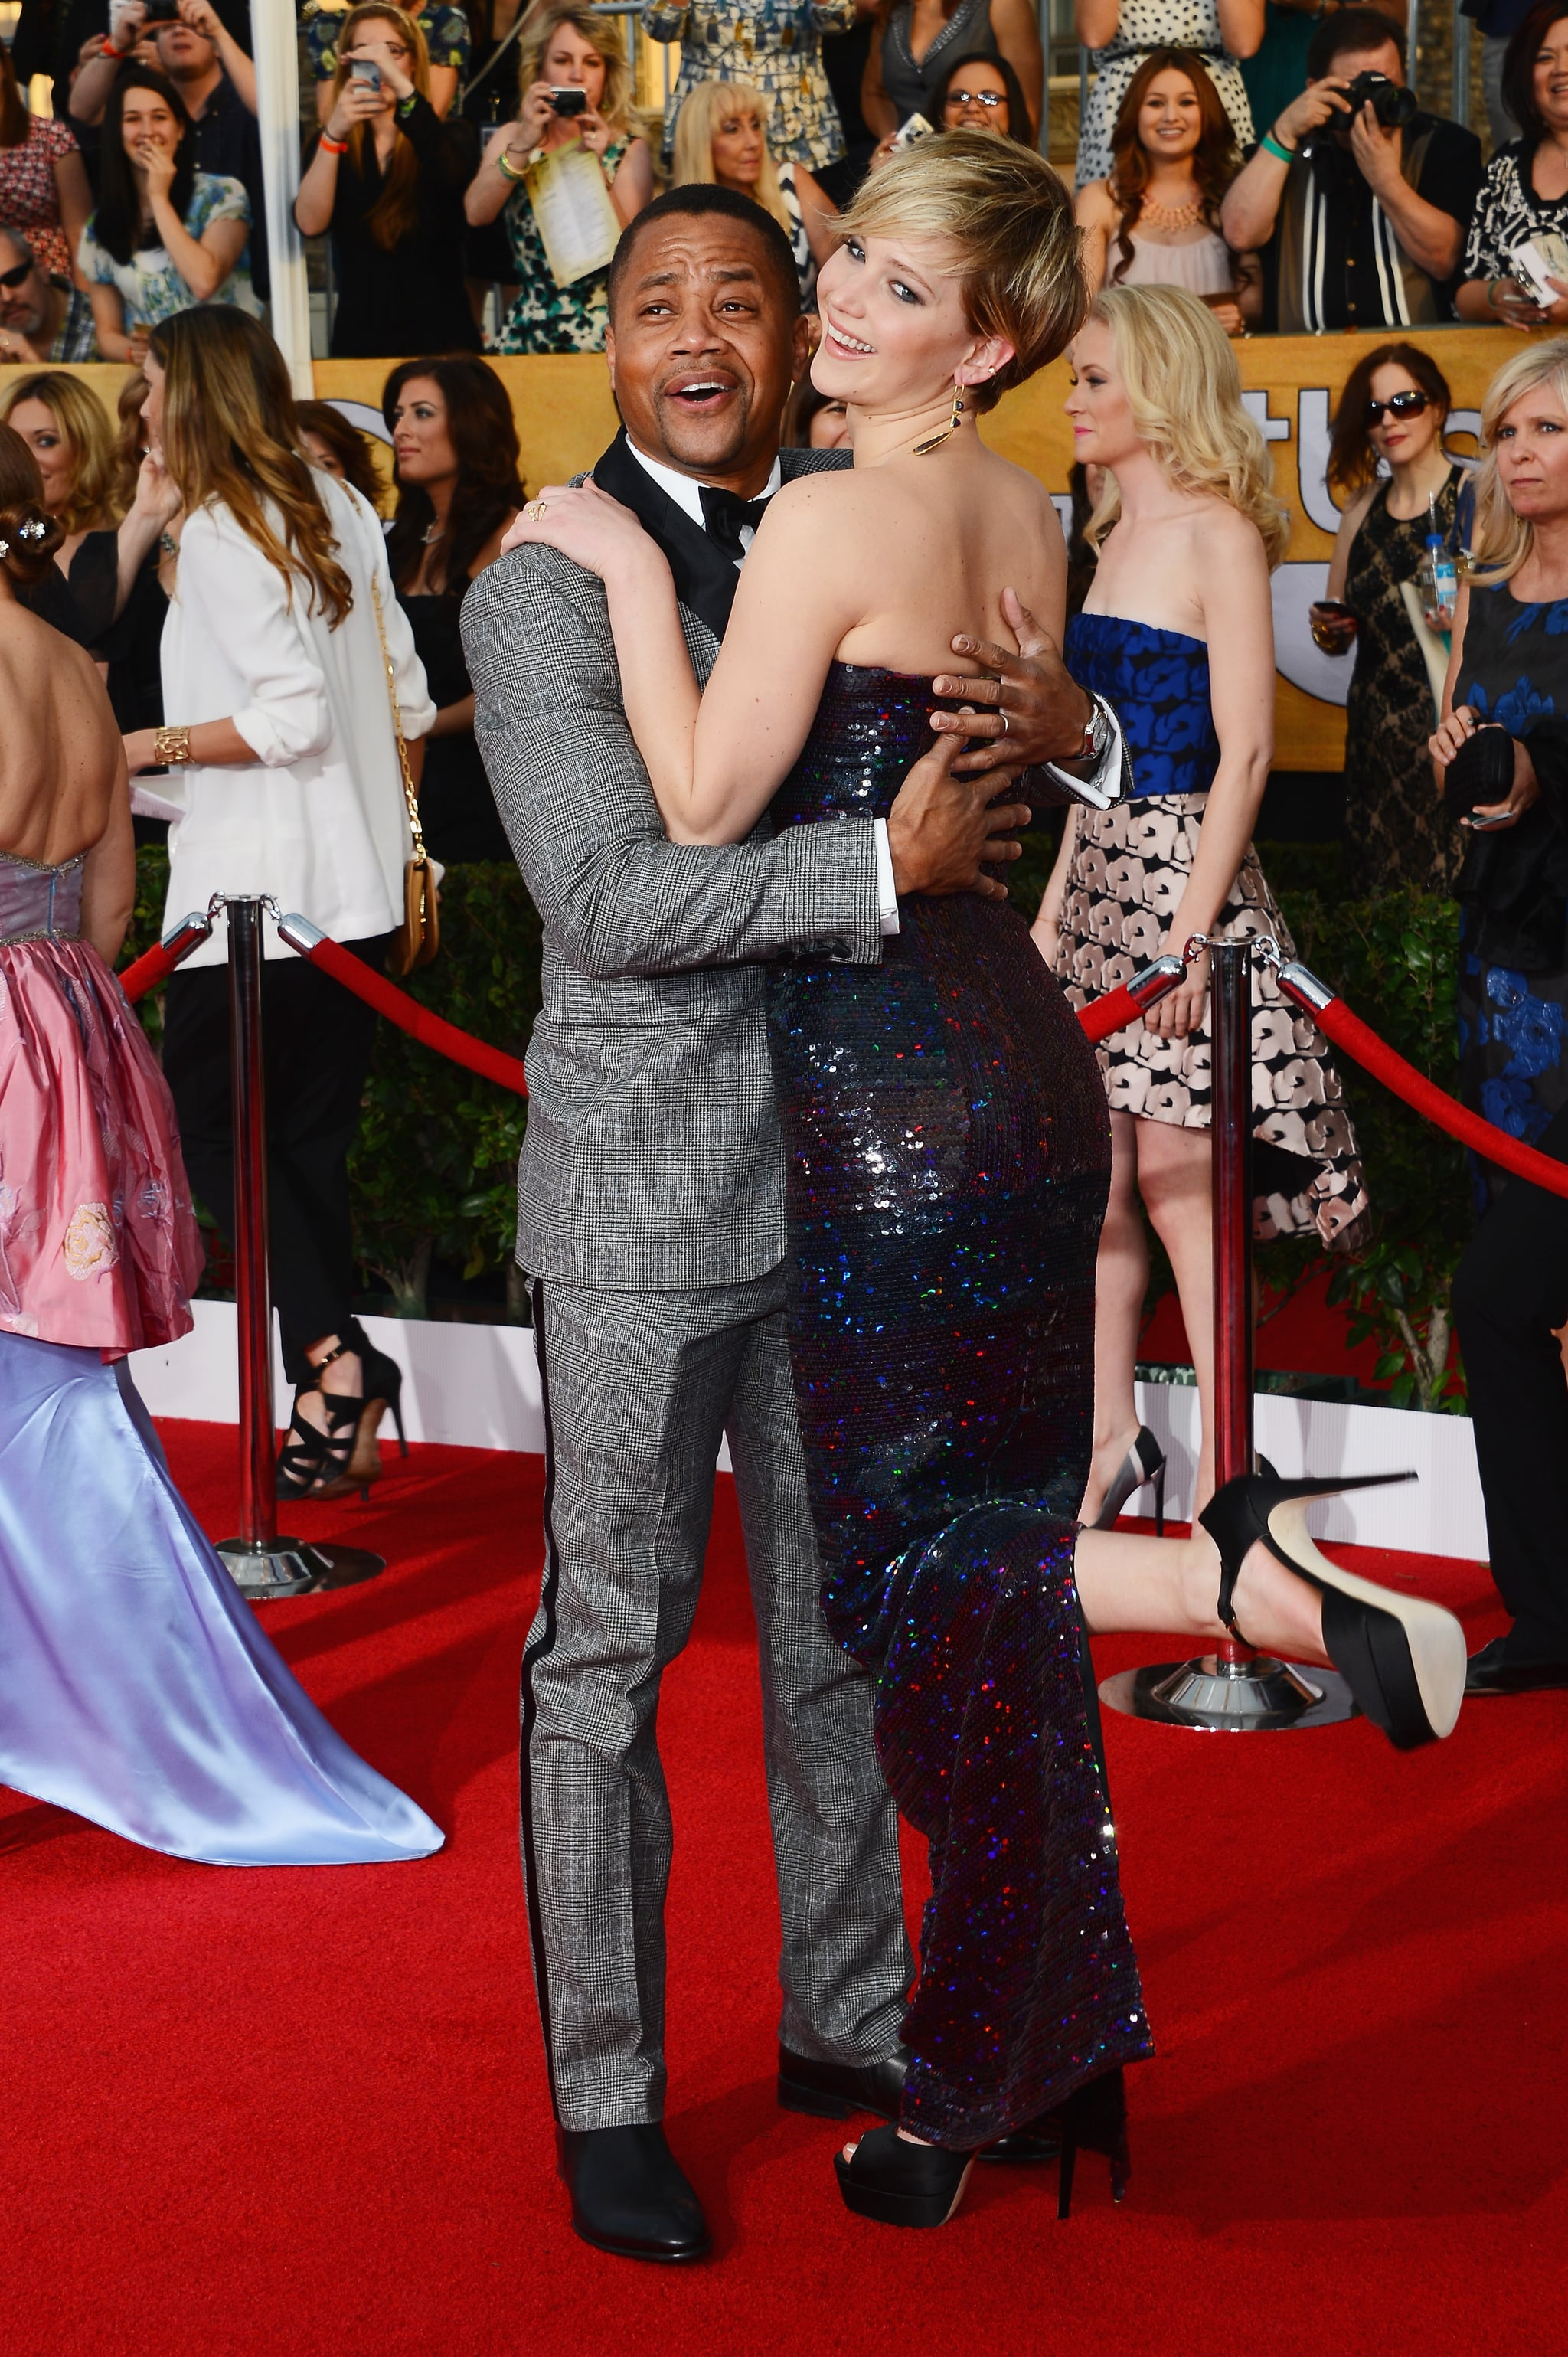 Jennifer Lawrence and Cube Gooding Jr. had a silly red carpet moment at the Screen Actors Guild Awards.